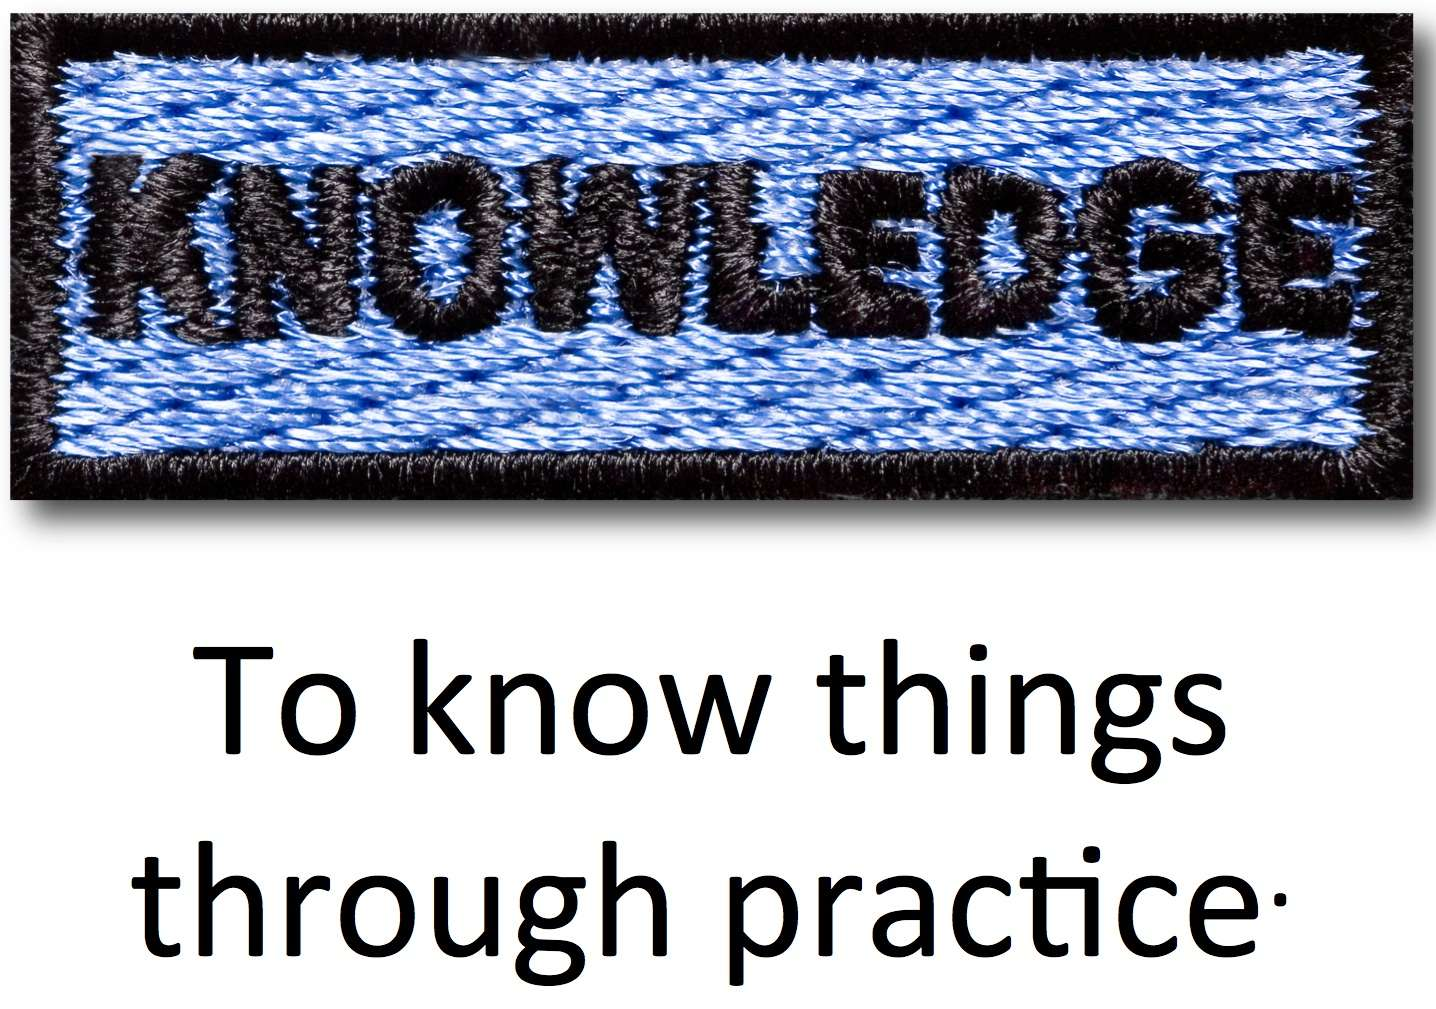 Knowledge - To know things through practice